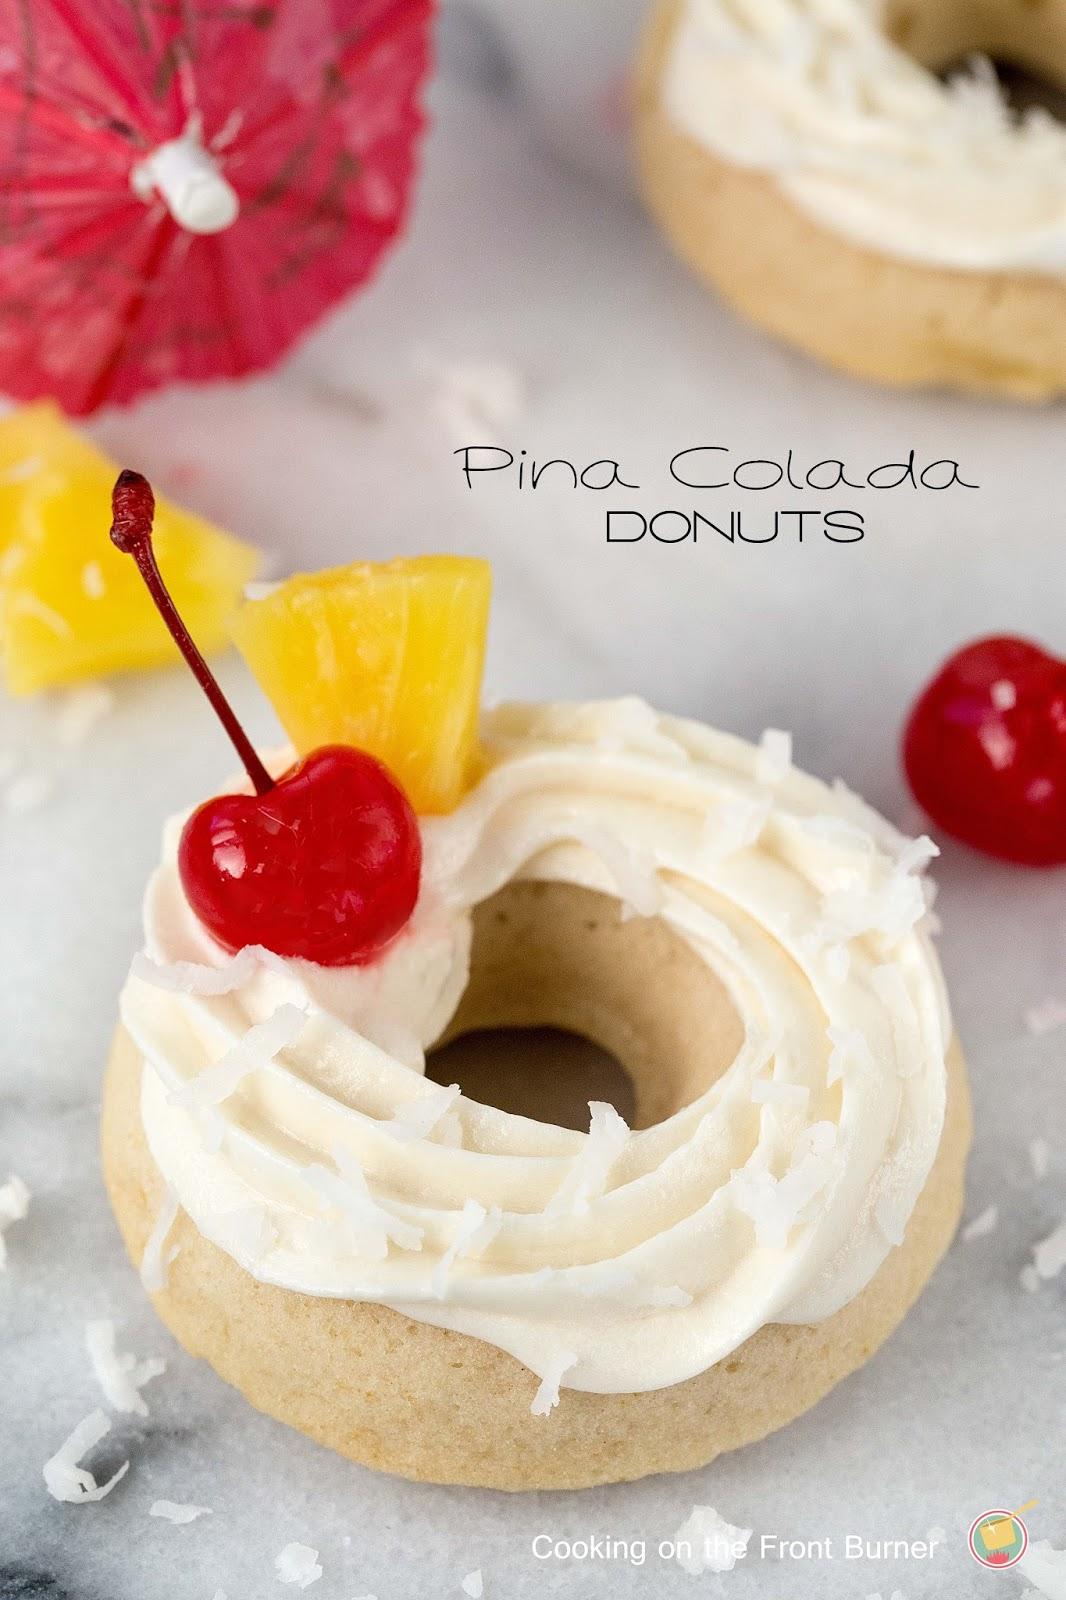 Pina Colada Donuts from Cooking on the Front Burner